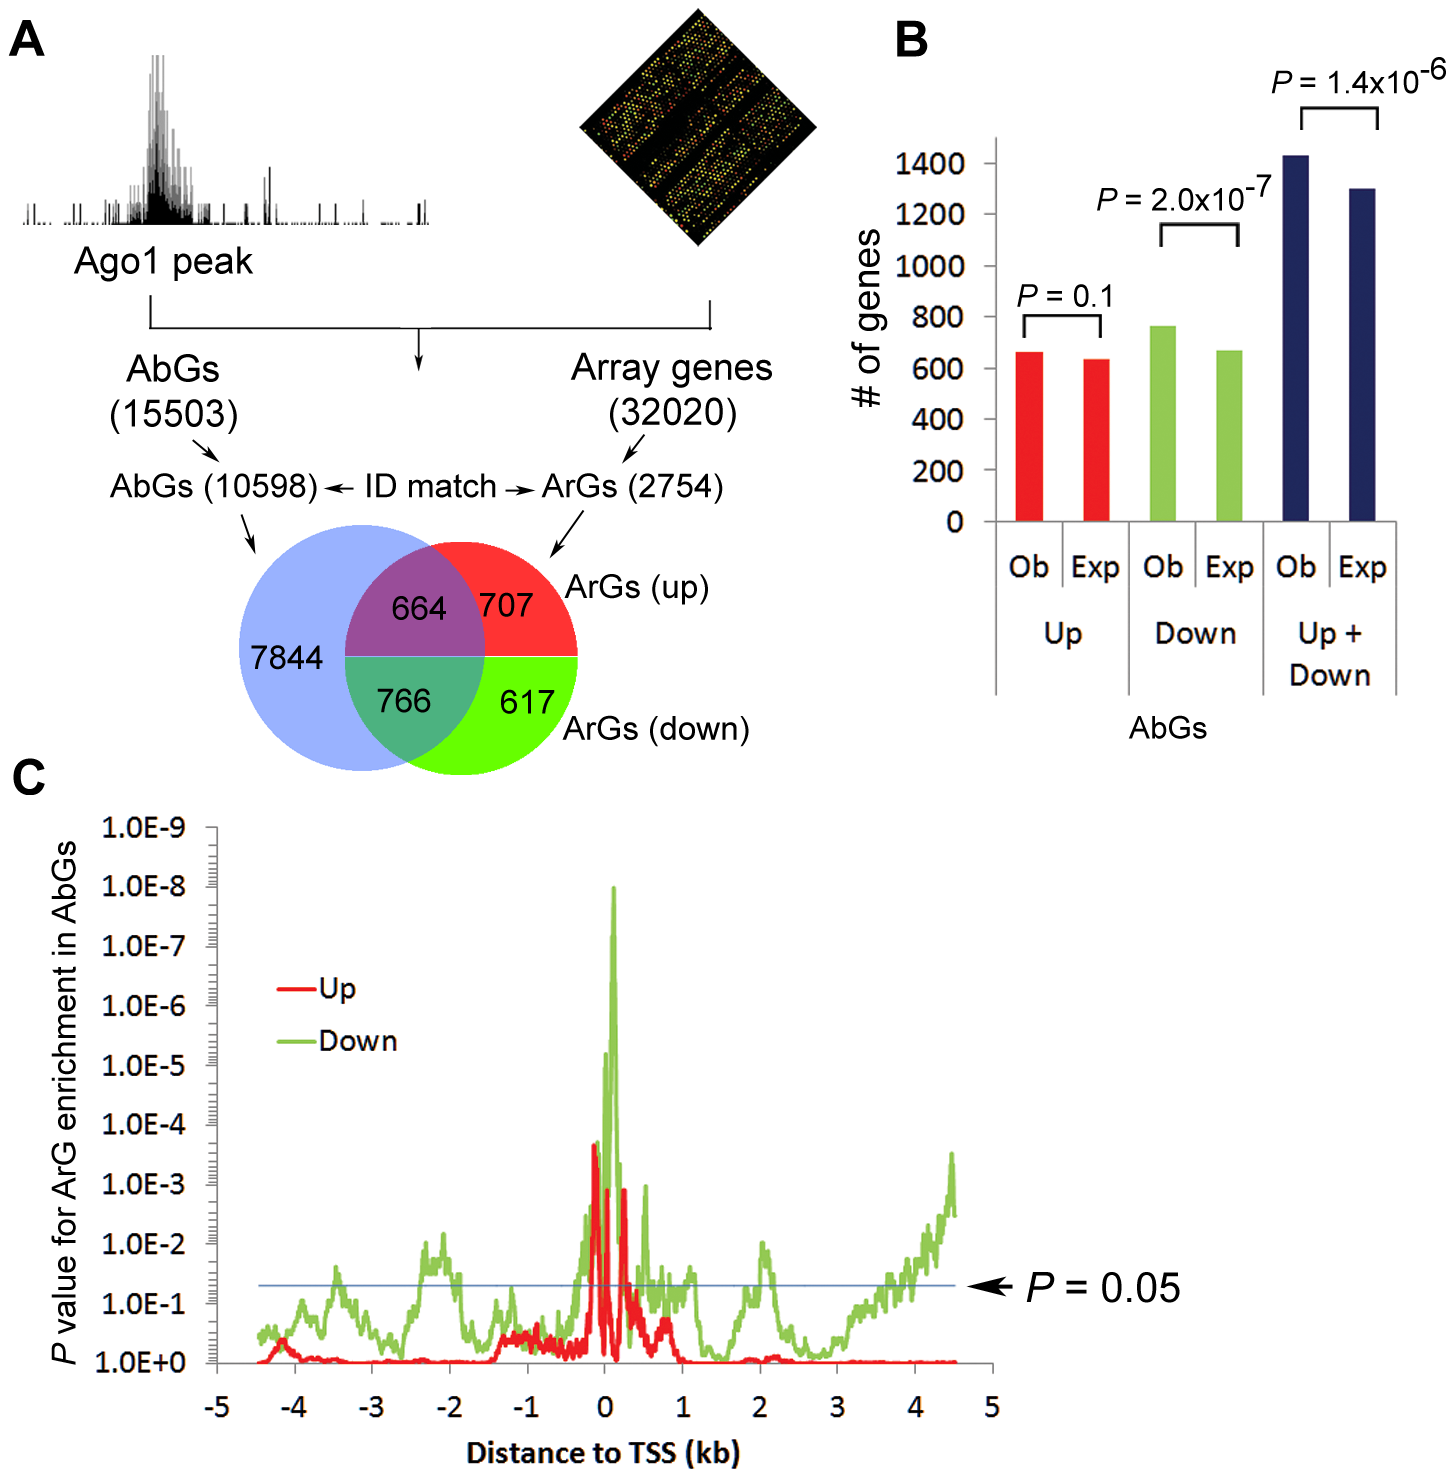 Combined ChIP-seq and microarray analysis reveals that Ago1 depletion affects expression of Ago1-bound genes.